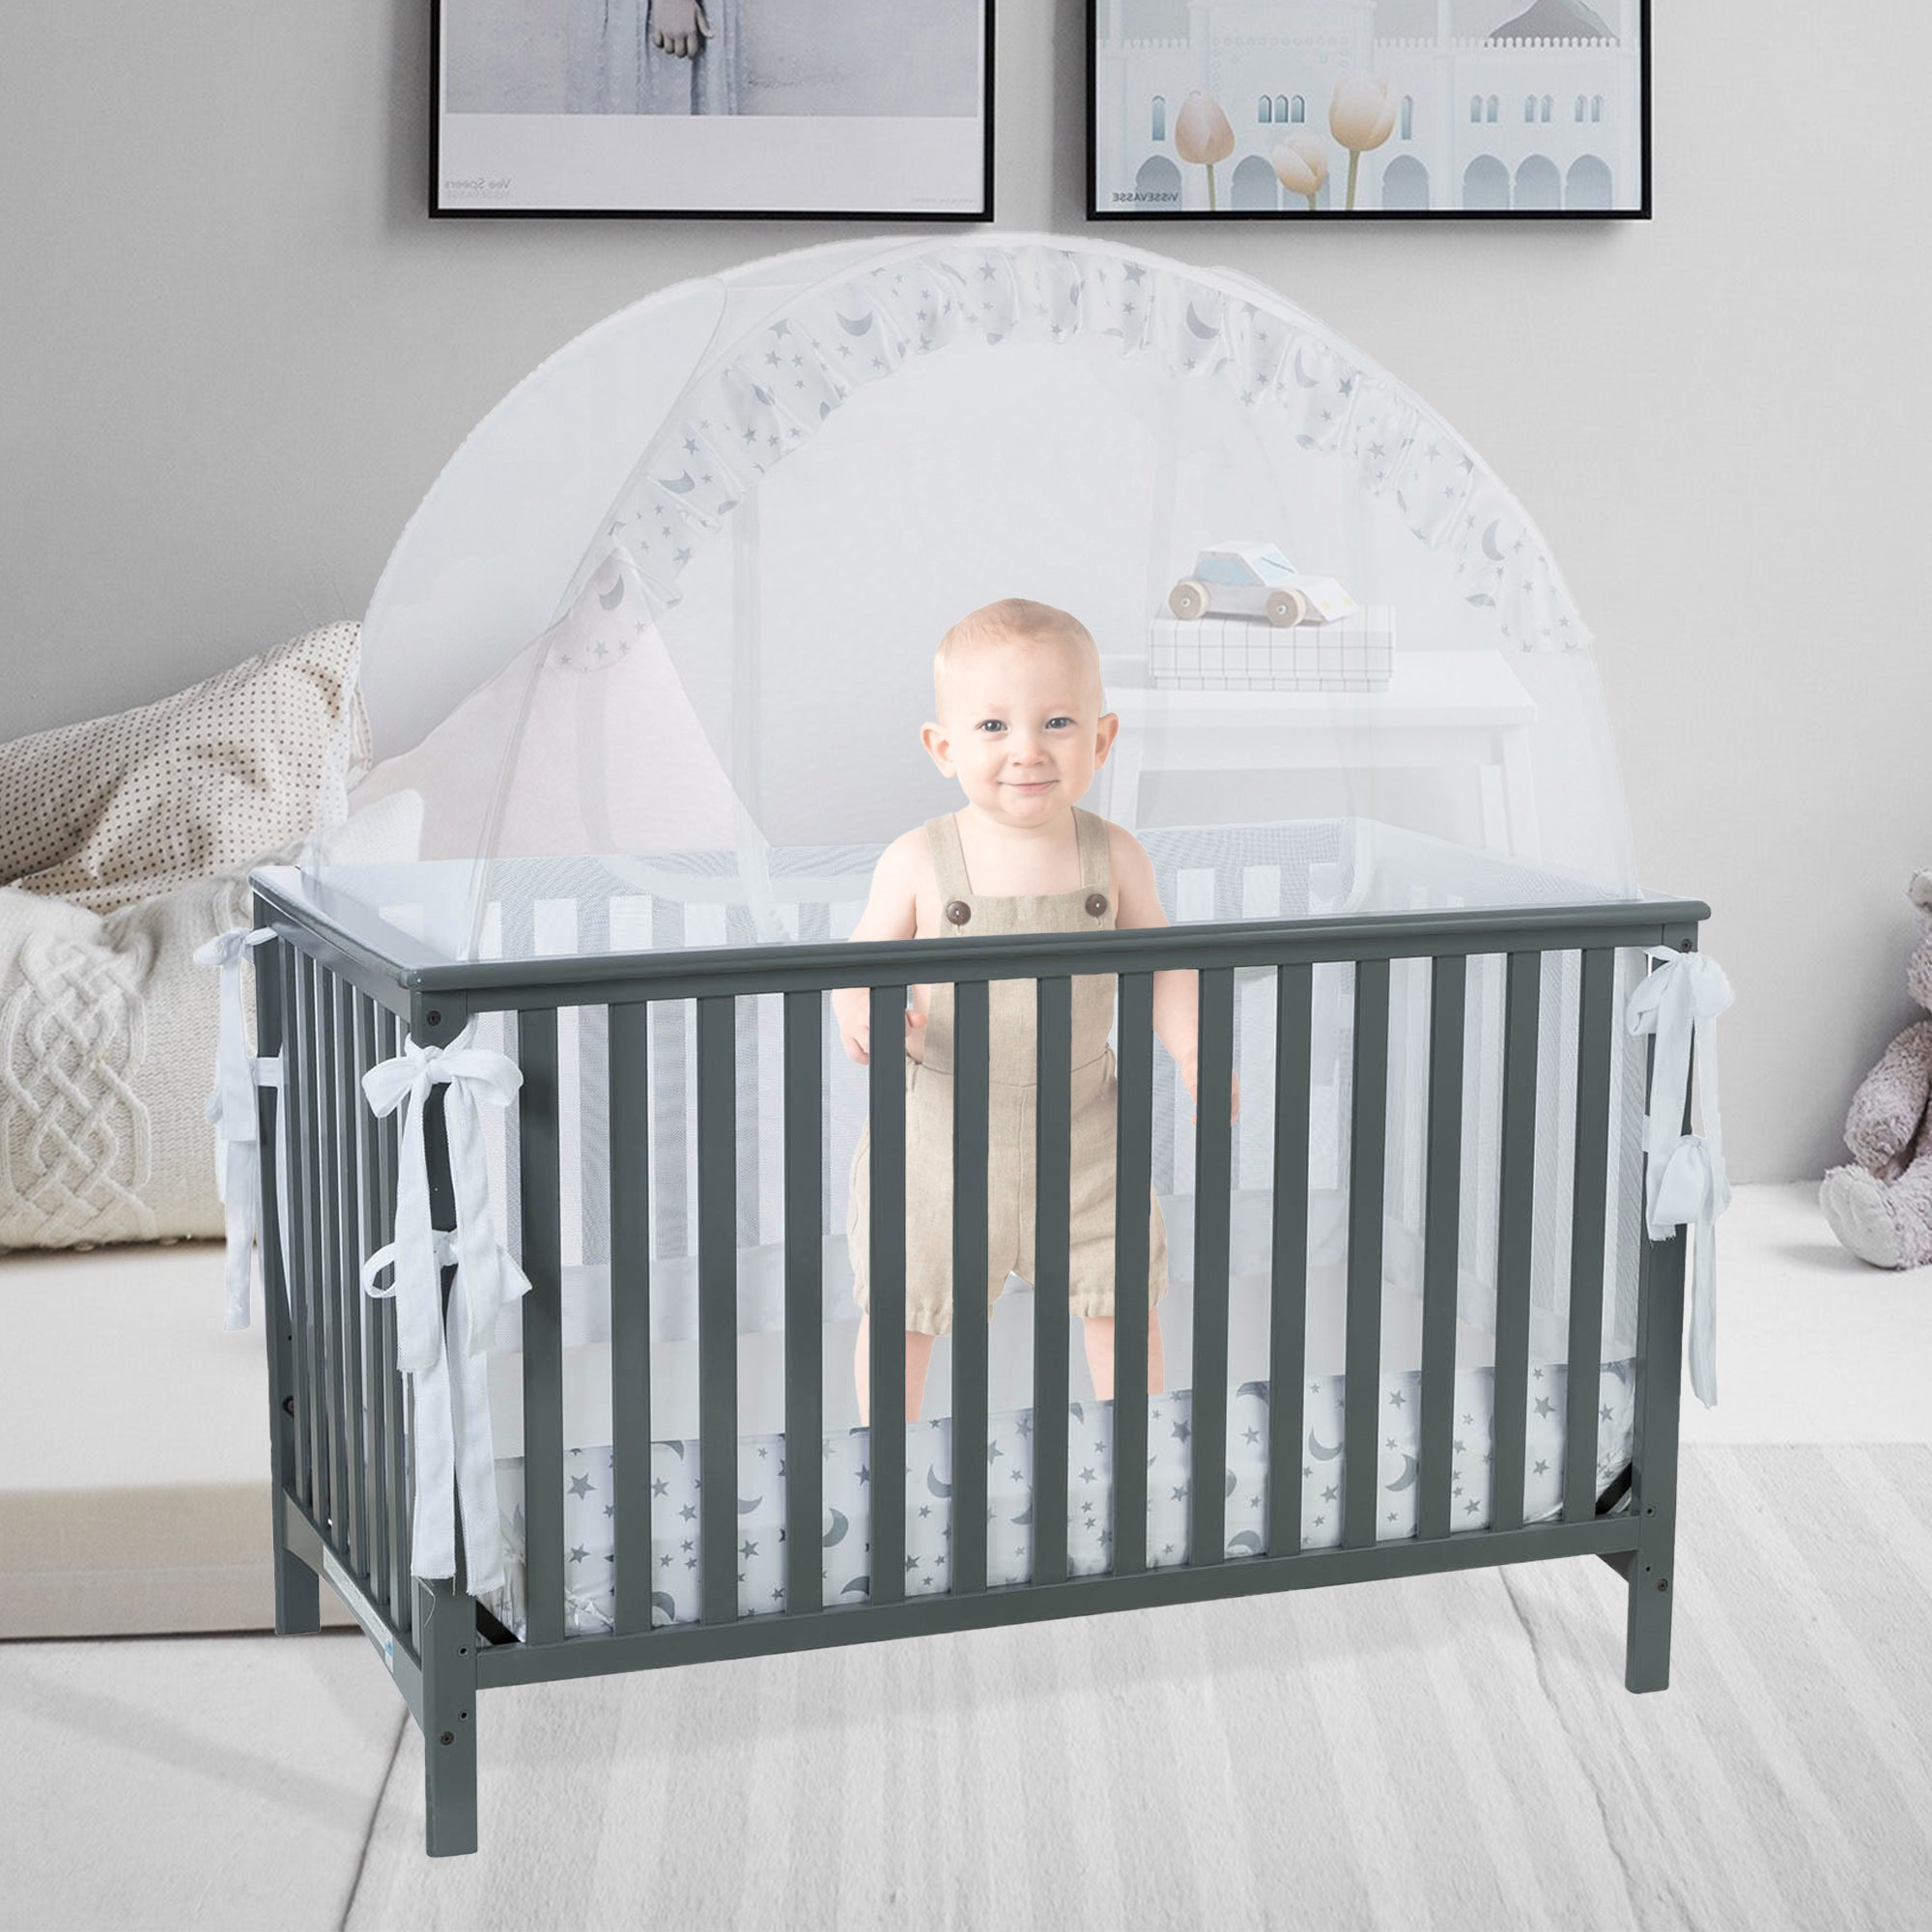 Baby Crib Tent Safety Net Pop Up Canopy Cover - Never Recalled  sc 1 st  eBay & Baby Crib Tent Safety Net Pop Up Canopy Cover - Never Recalled ...